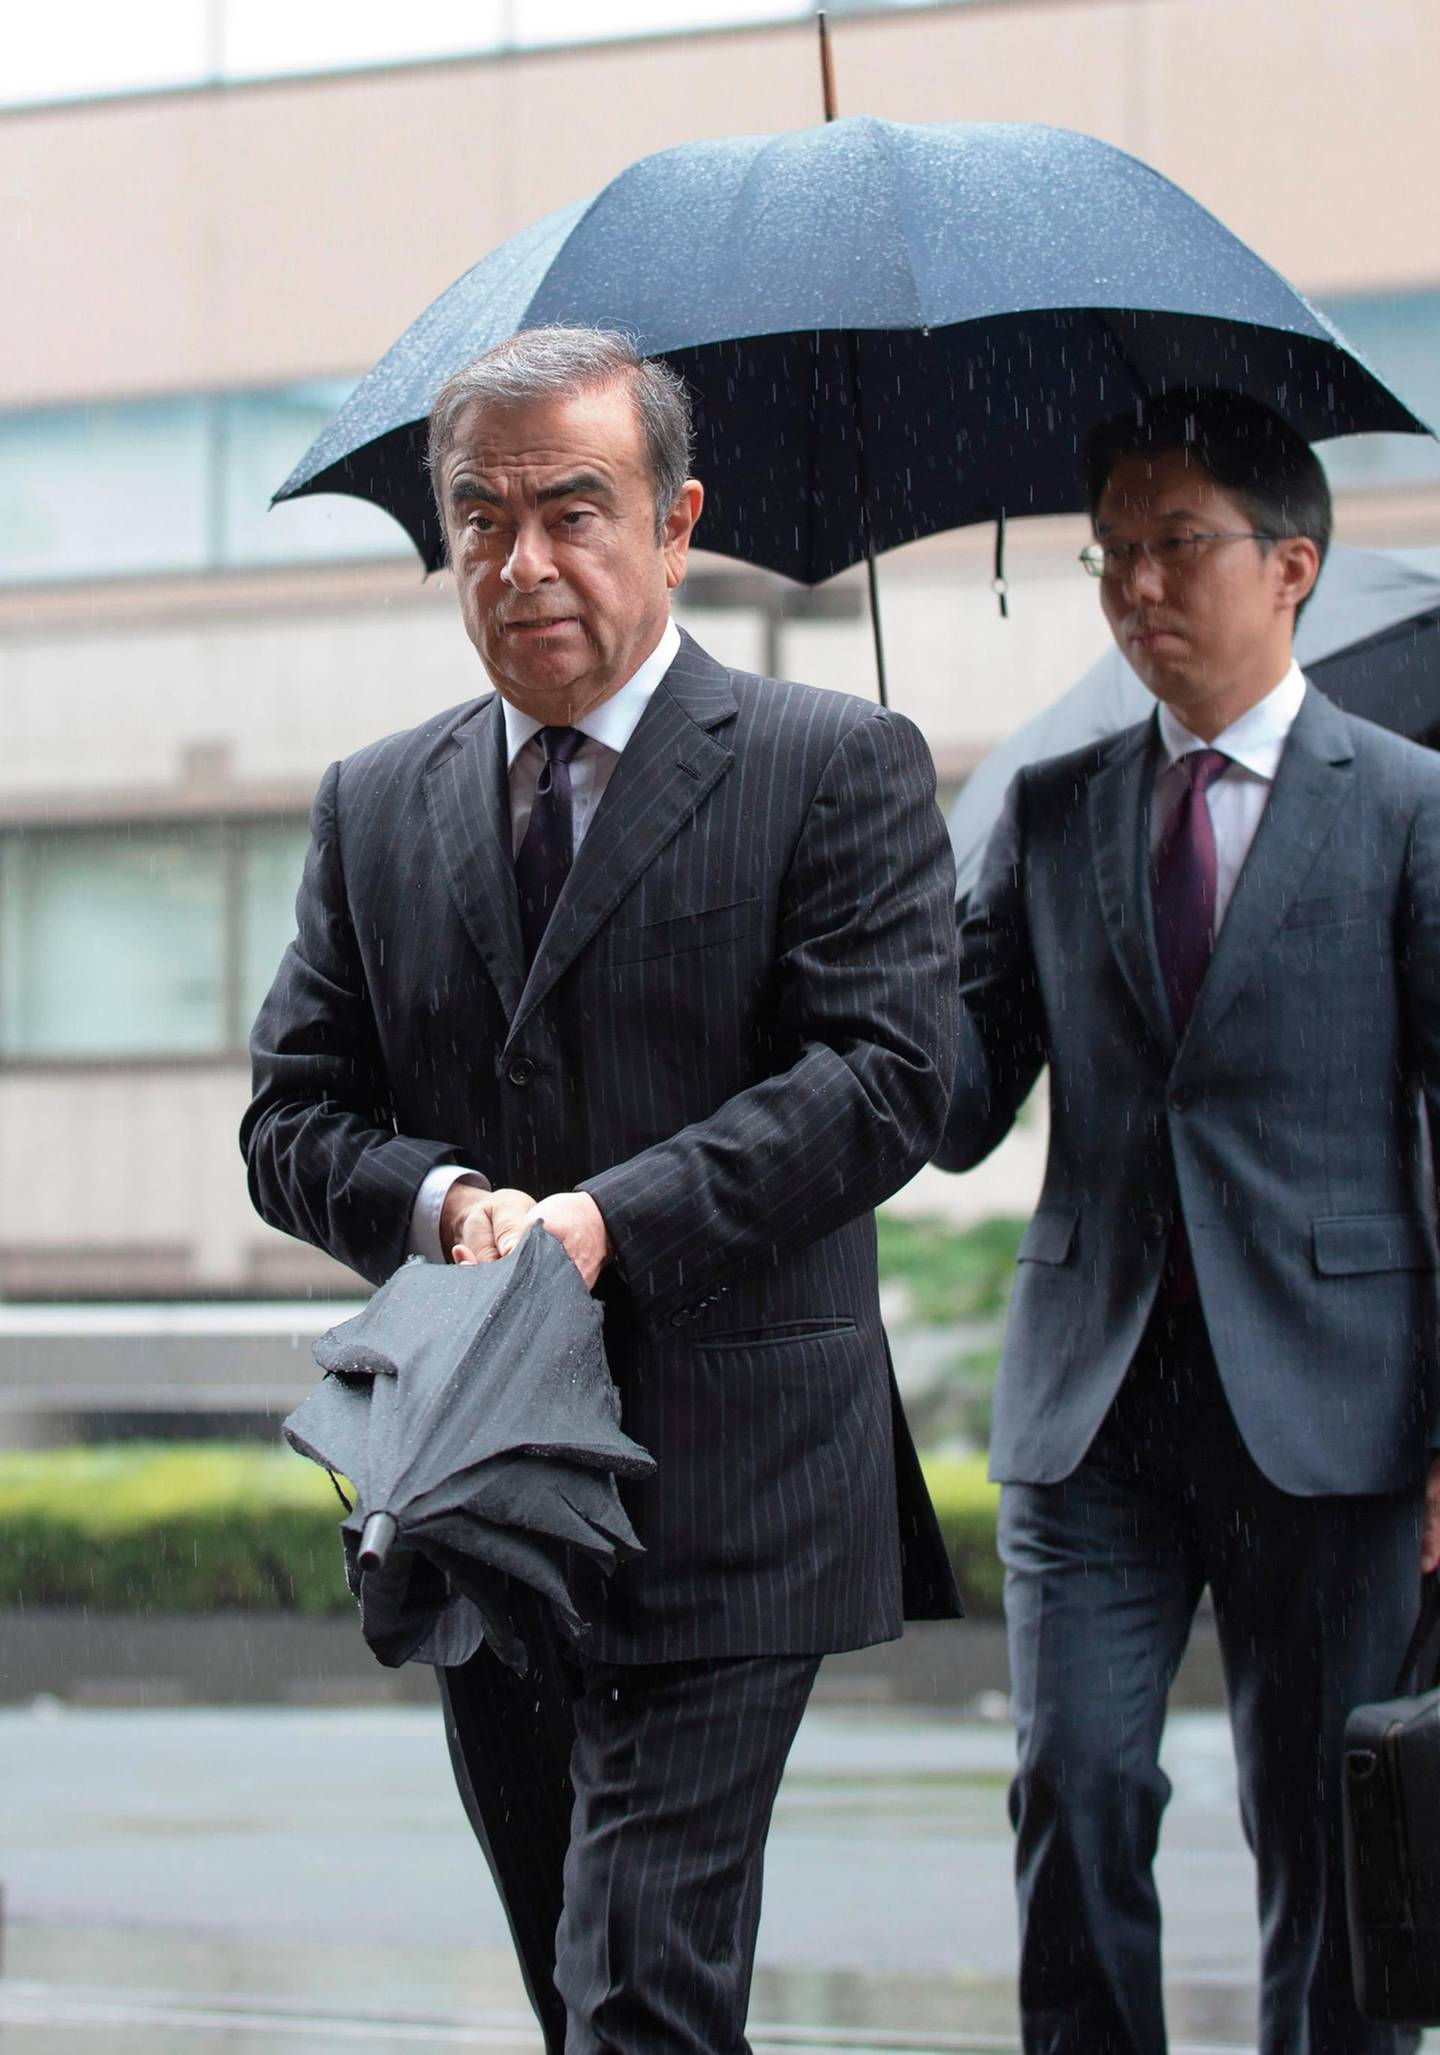 """(FILES) In this file photo taken on June 24, 2019 former Nissan Motor Chairman Carlos Ghosn (L) arrives for a pre-trial hearing at the Tokyo District Court in Tokyo. A year after Japan learned with horror that Carlos Ghosn had jumped bail to become the world's most famous fugitive, the fiasco and its repercussions continue to haunt the country. Ghosn was living in a monitored Tokyo apartment awaiting trial on financial misconduct charges when he casually boarded a train to Osaka in western Japan on December 29, 2019 with two accomplices. - TO GO WITH AFP FOCUS """"JAPAN-GHOSN-AUTOMOBILE-LEBANON-NISSAN-RENAULT"""" BY ETIENNE BALMER   / AFP / Kazuhiro NOGI / TO GO WITH AFP FOCUS """"JAPAN-GHOSN-AUTOMOBILE-LEBANON-NISSAN-RENAULT"""" BY ETIENNE BALMER"""